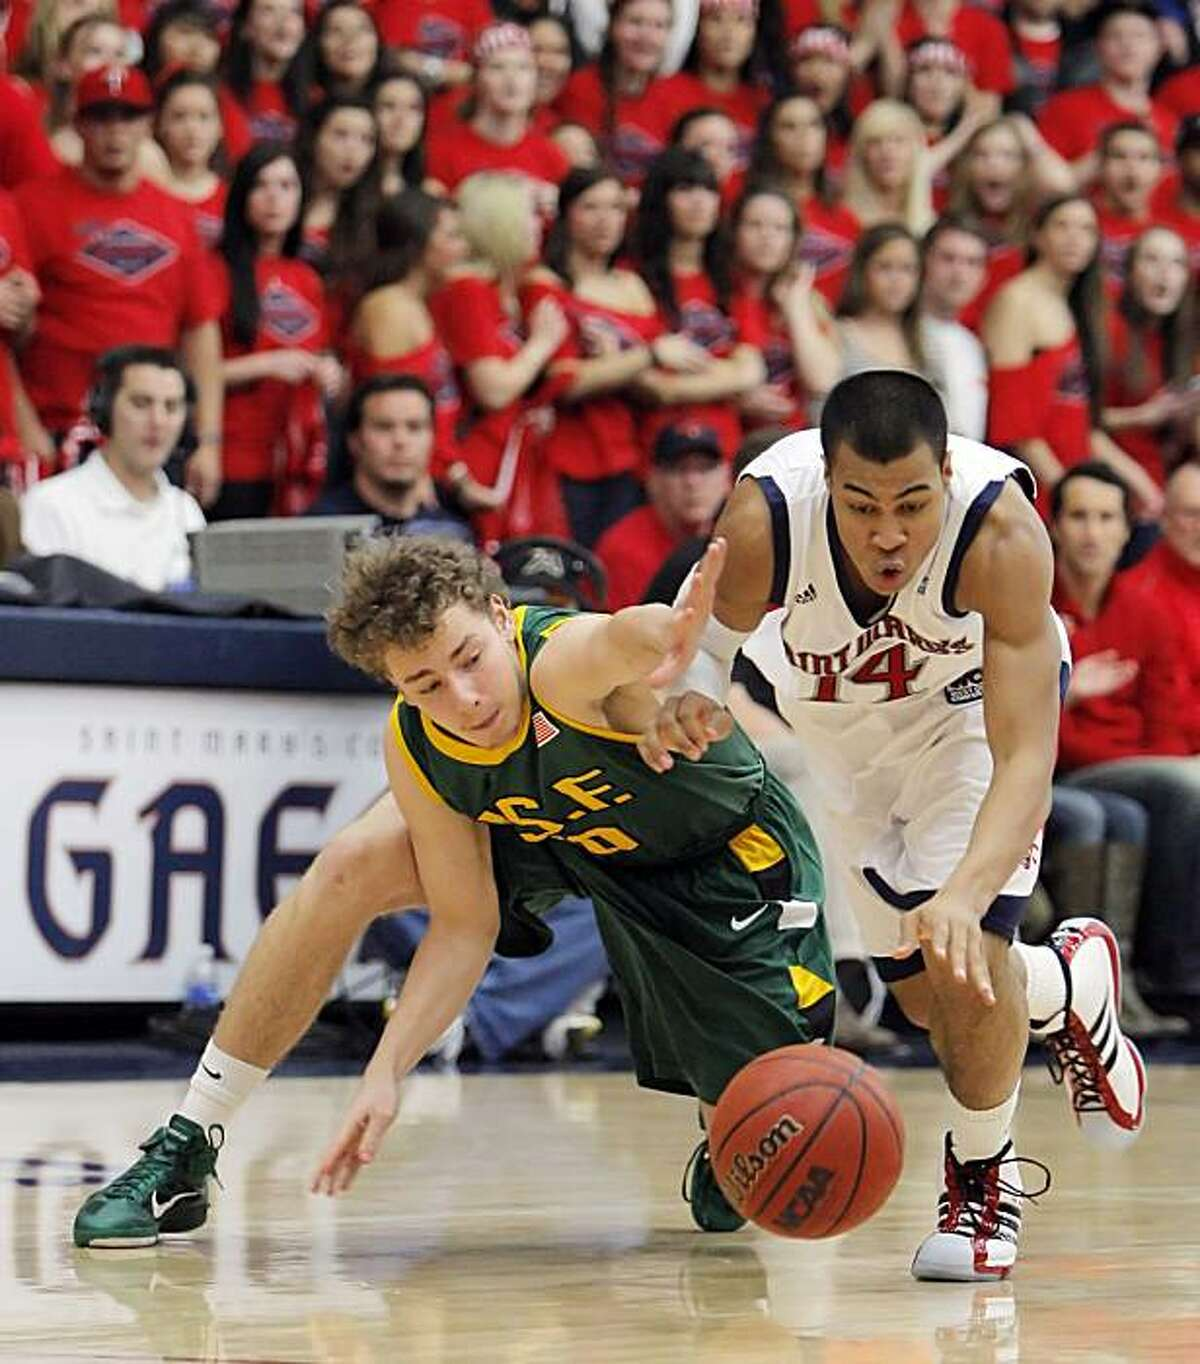 St. Mary's Stephen Holt, right, and USF's Marko Petrovic go after a loose ball in the first half. The St. Mary's College Gaels played the University of San Francisco Dons at McKeon Pavilion at St. Mary's College in Moraga, Calif., on Thursday, January 13, 2011. The Gaels defeated the Dons 71-57.